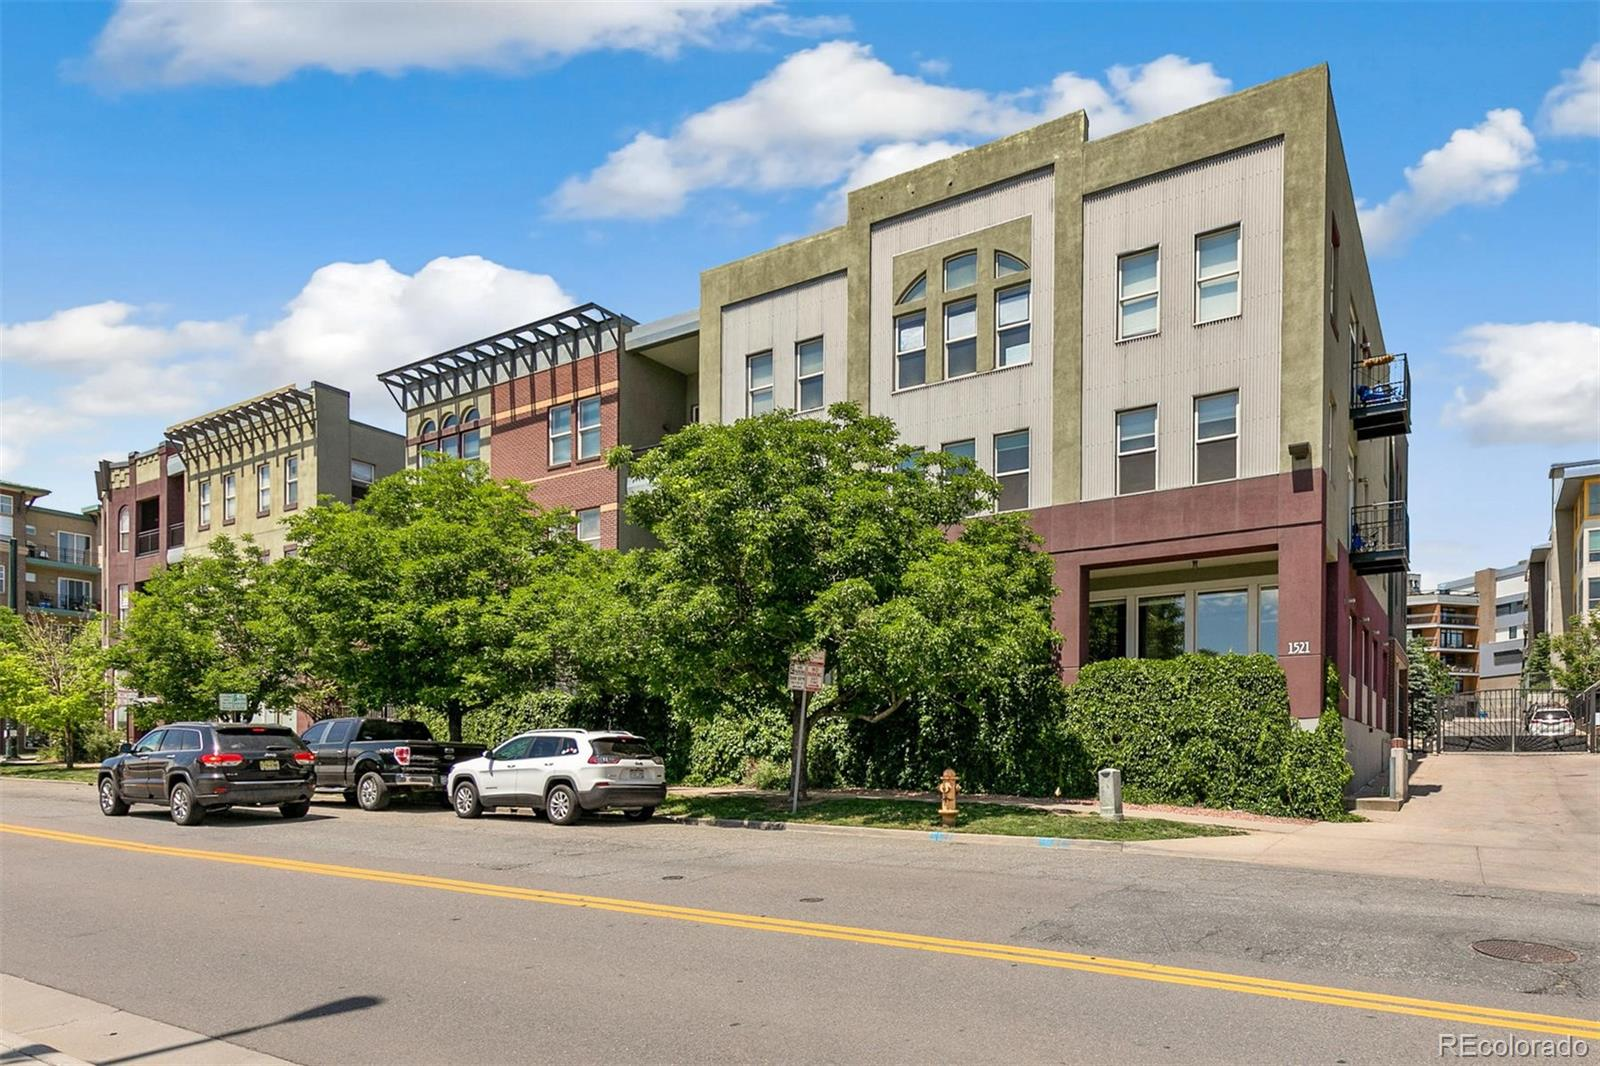 "Live in the heart of Denver at a fantastic price!  - This LoHi Loft is in the center of all the action. Explore the neighborhood and experience all that LoHi has to offer, or take a short walk to LoDo, Coors Field, Pepsi Center, Mile High Stadium, and beyond. A block away from Confluence Park, the Platte River, and Cherry Creek paths allows you access to walking, jogging and biking to your heart's content. This well-cared-for, large 2-bed, 2, bath end unit loft features high ceilings and a ""chef's dream"" kitchen with stainless steel appliances and a huge kitchen island perfect for entertaining.  The master bedroom offers a spacious closet and a remodeled master bathroom. The 2nd bedroom has beautiful french doors and direct access to the balcony.  Oversized windows throughout throw an abundance of natural light into the space.  Enjoy striking views of  Downtown Denver from your own private balcony as you relax, grill and entertain.  Included is an in-unit washer & dryer, in-unit storage and a additional private storage locker along with 2 deeded parking spaces (1 parking space in garage and 1 in the secured parking lot).   Don't miss this great opportunity as it is sure to go fast."